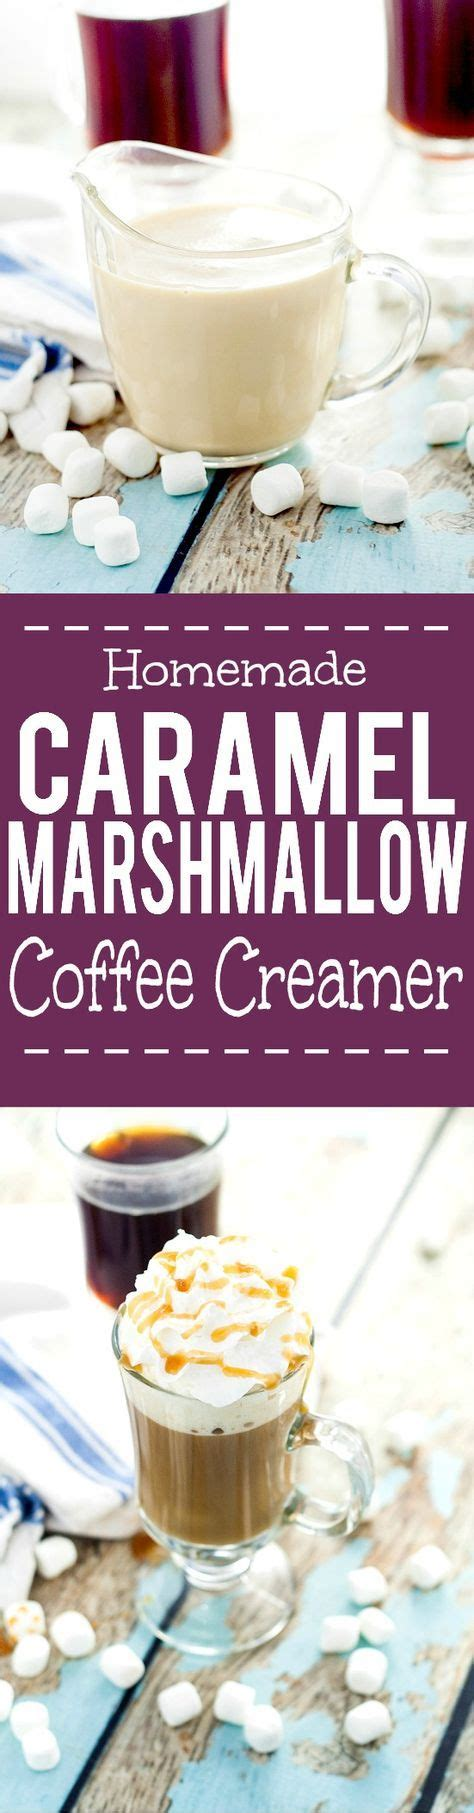 Made in just 10 minutes! Homemade Caramel Marshmallow Coffee Creamer recipe - Light ...